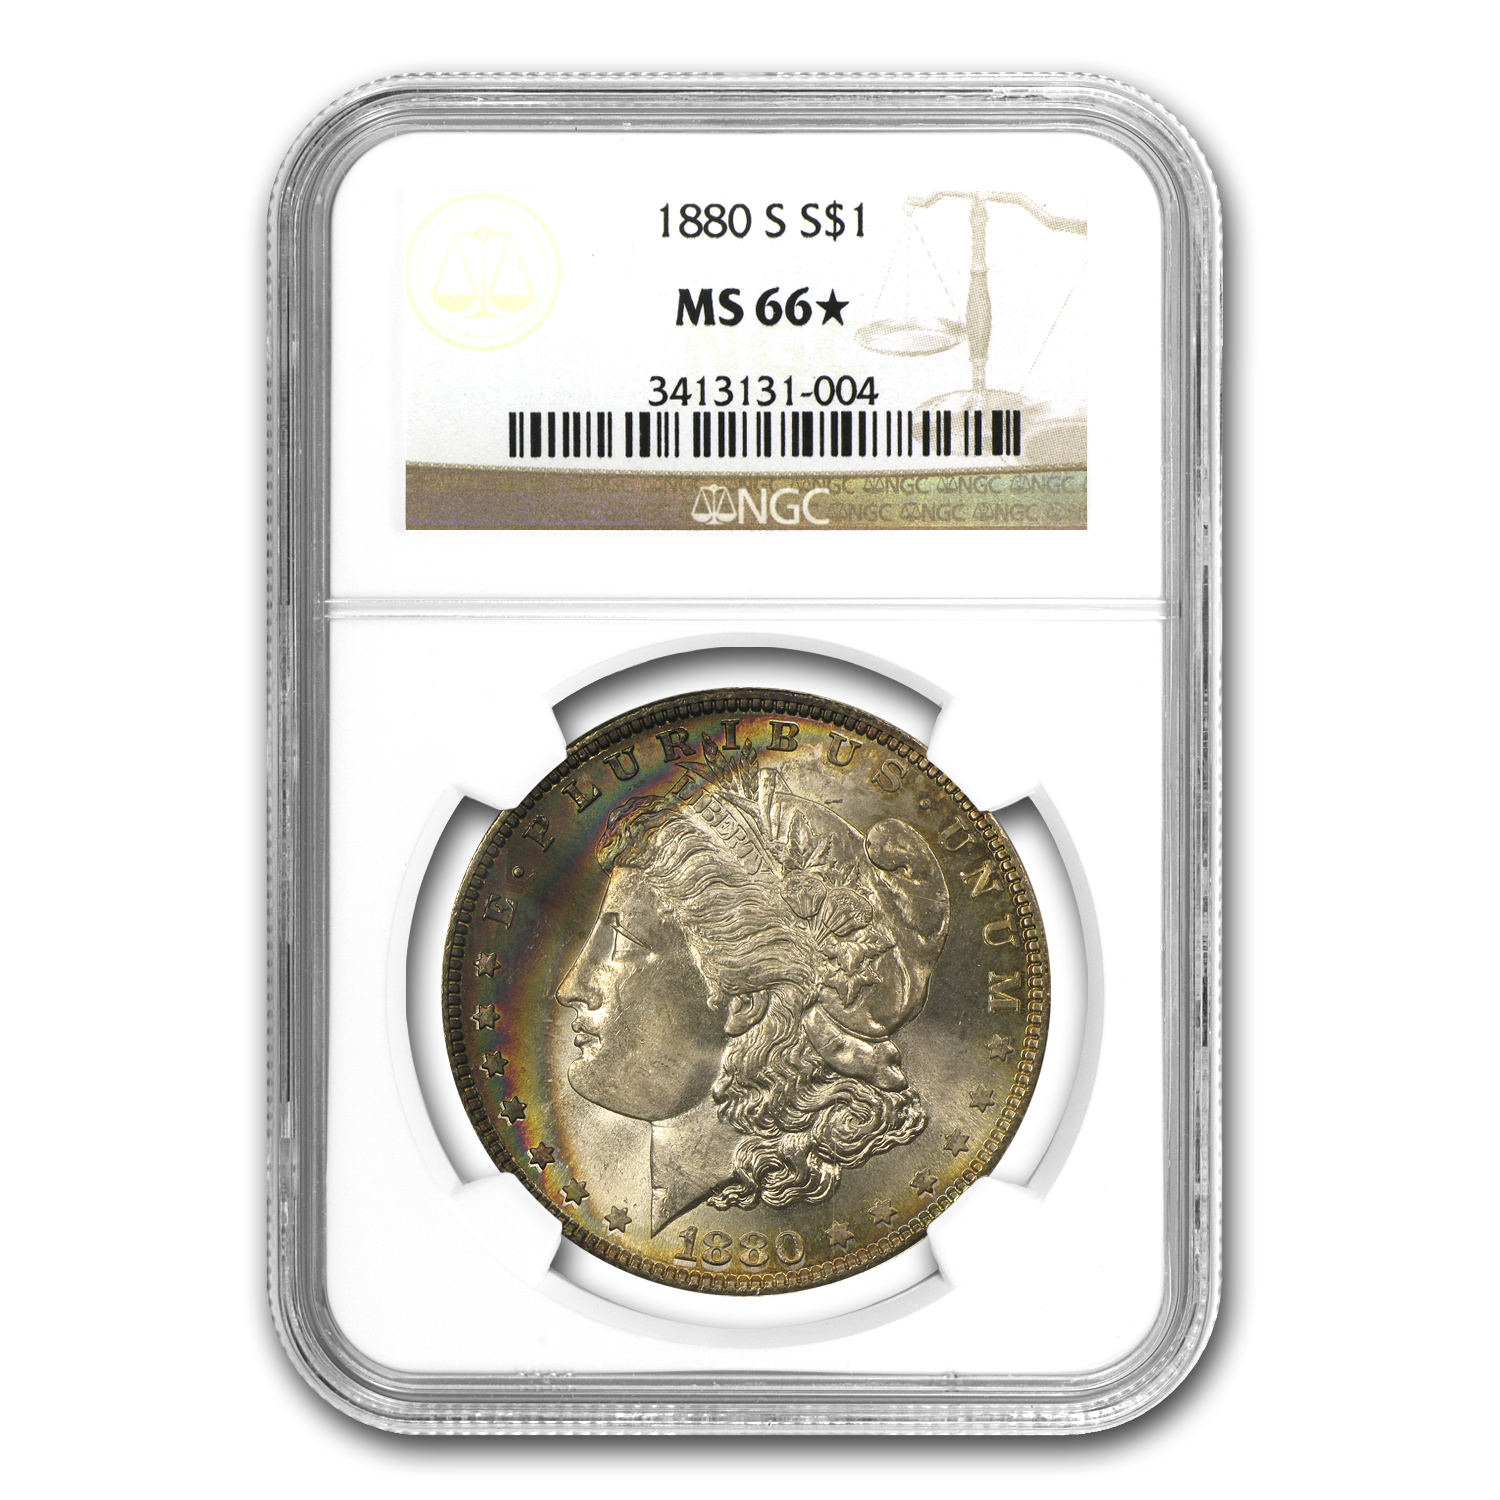 1880-S Morgan Dollar MS-66* Star NGC (Crescent Obv Toning)